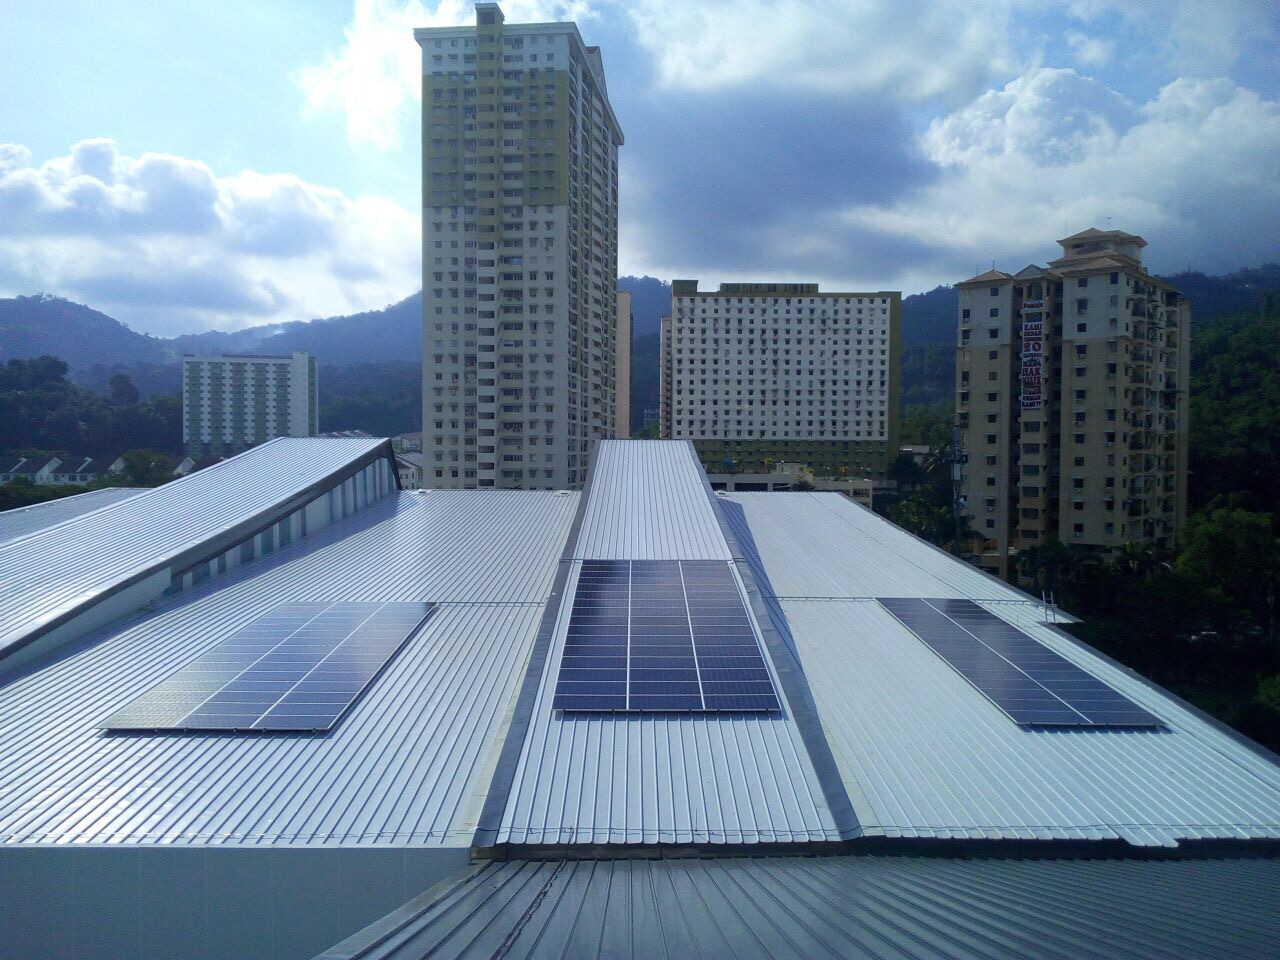 MBPP Relau Sports Complex Rooftop with Solar PV